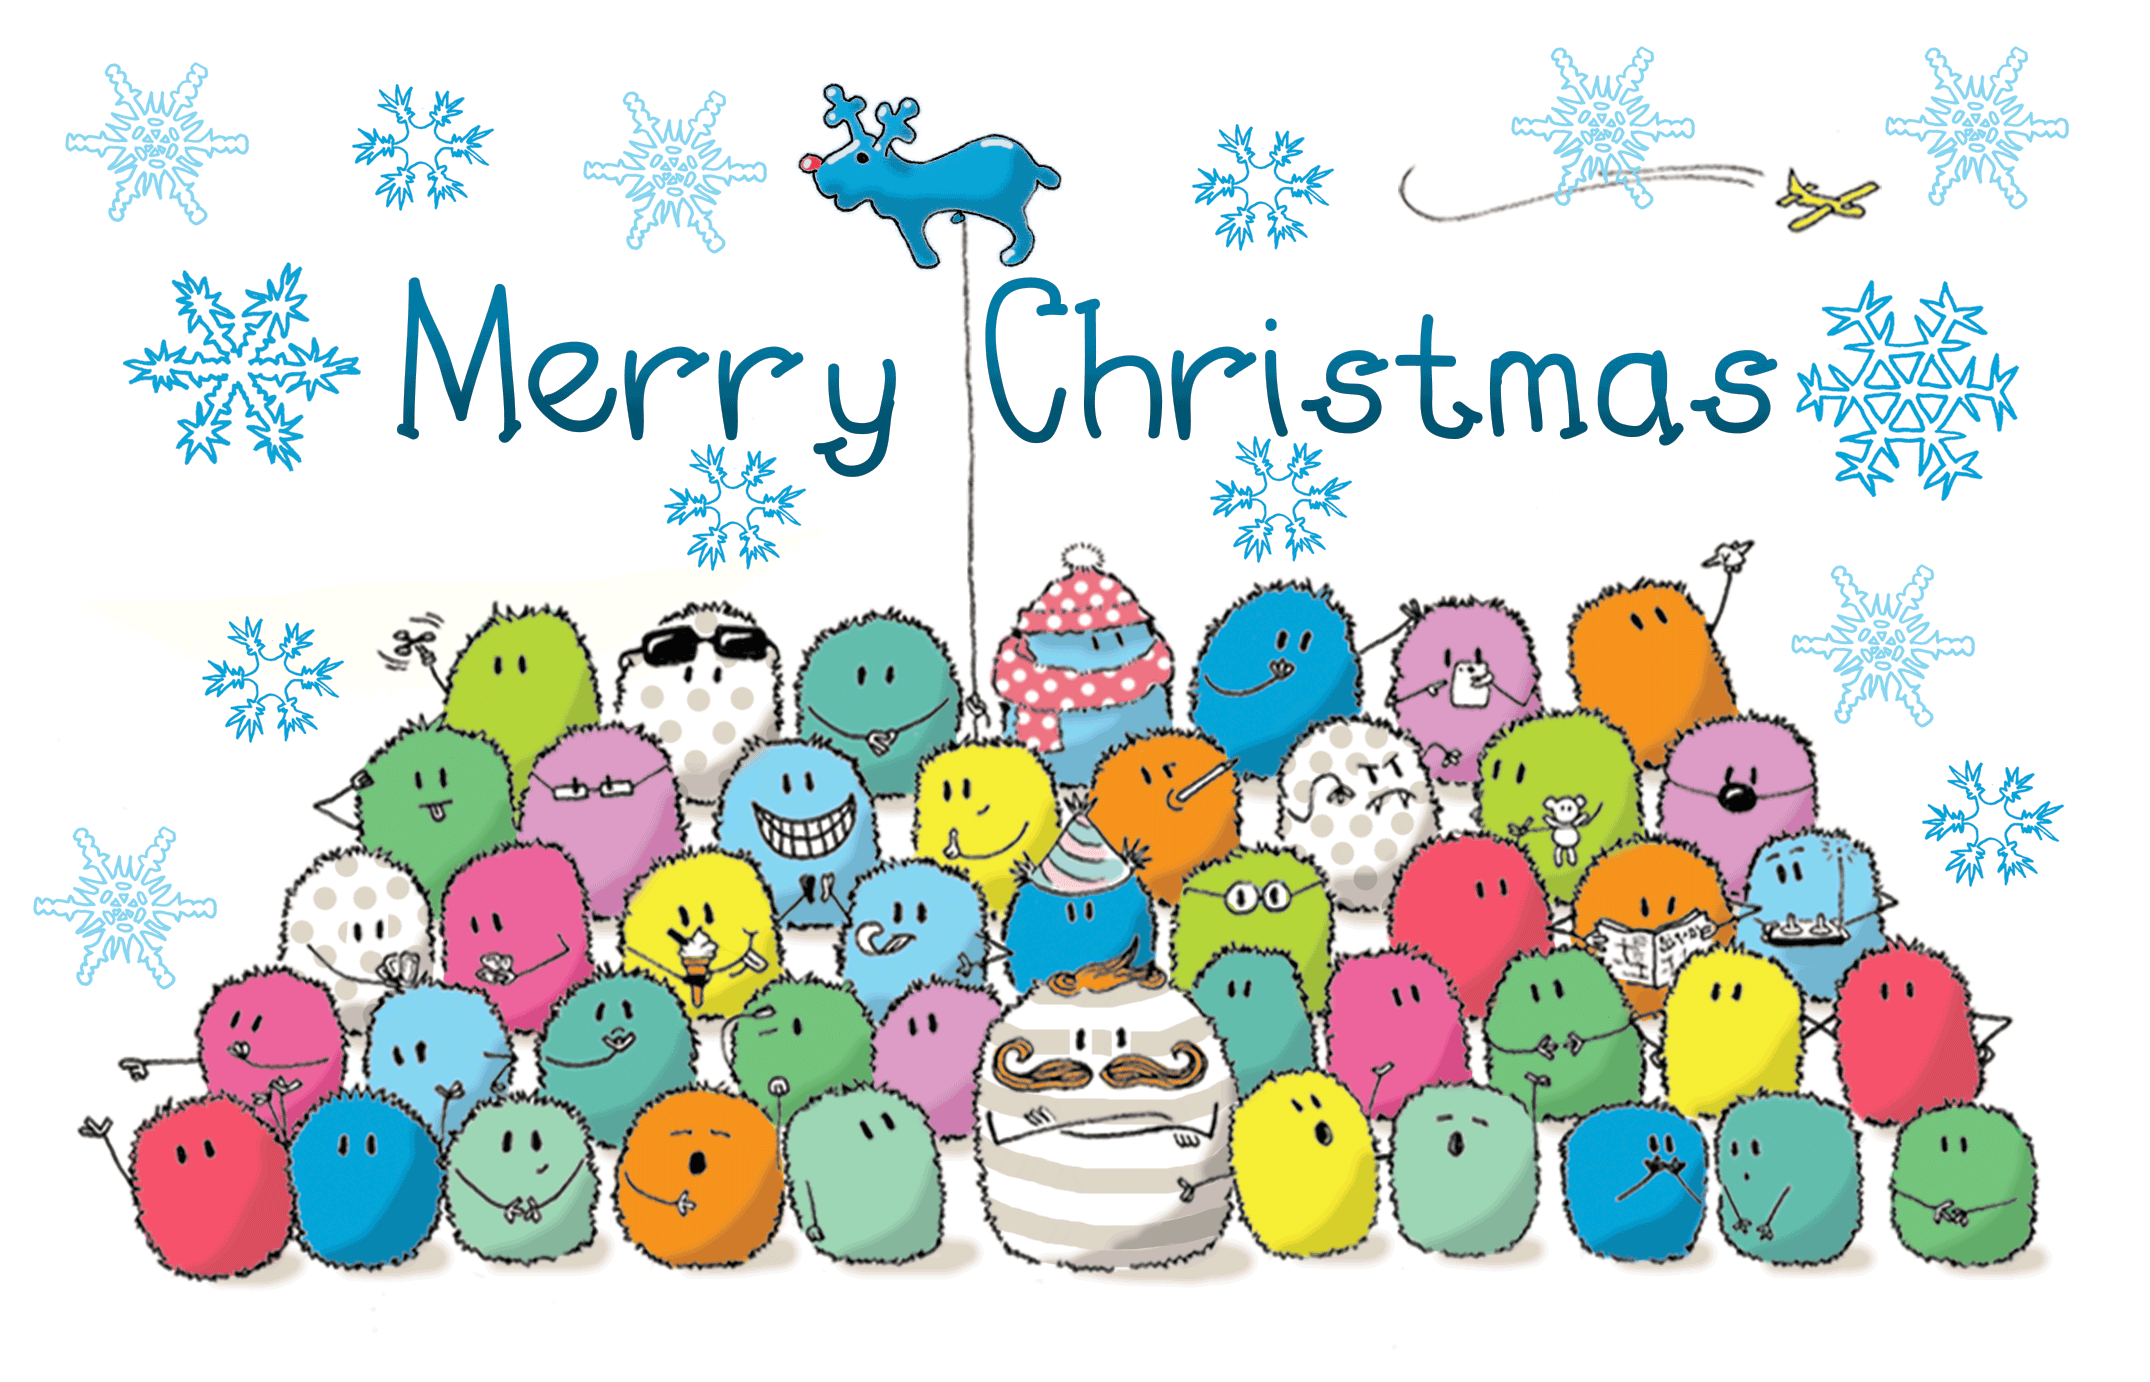 InkyMotes Christmas greetings card design - ink and digital illustration illustrated by sally barnett